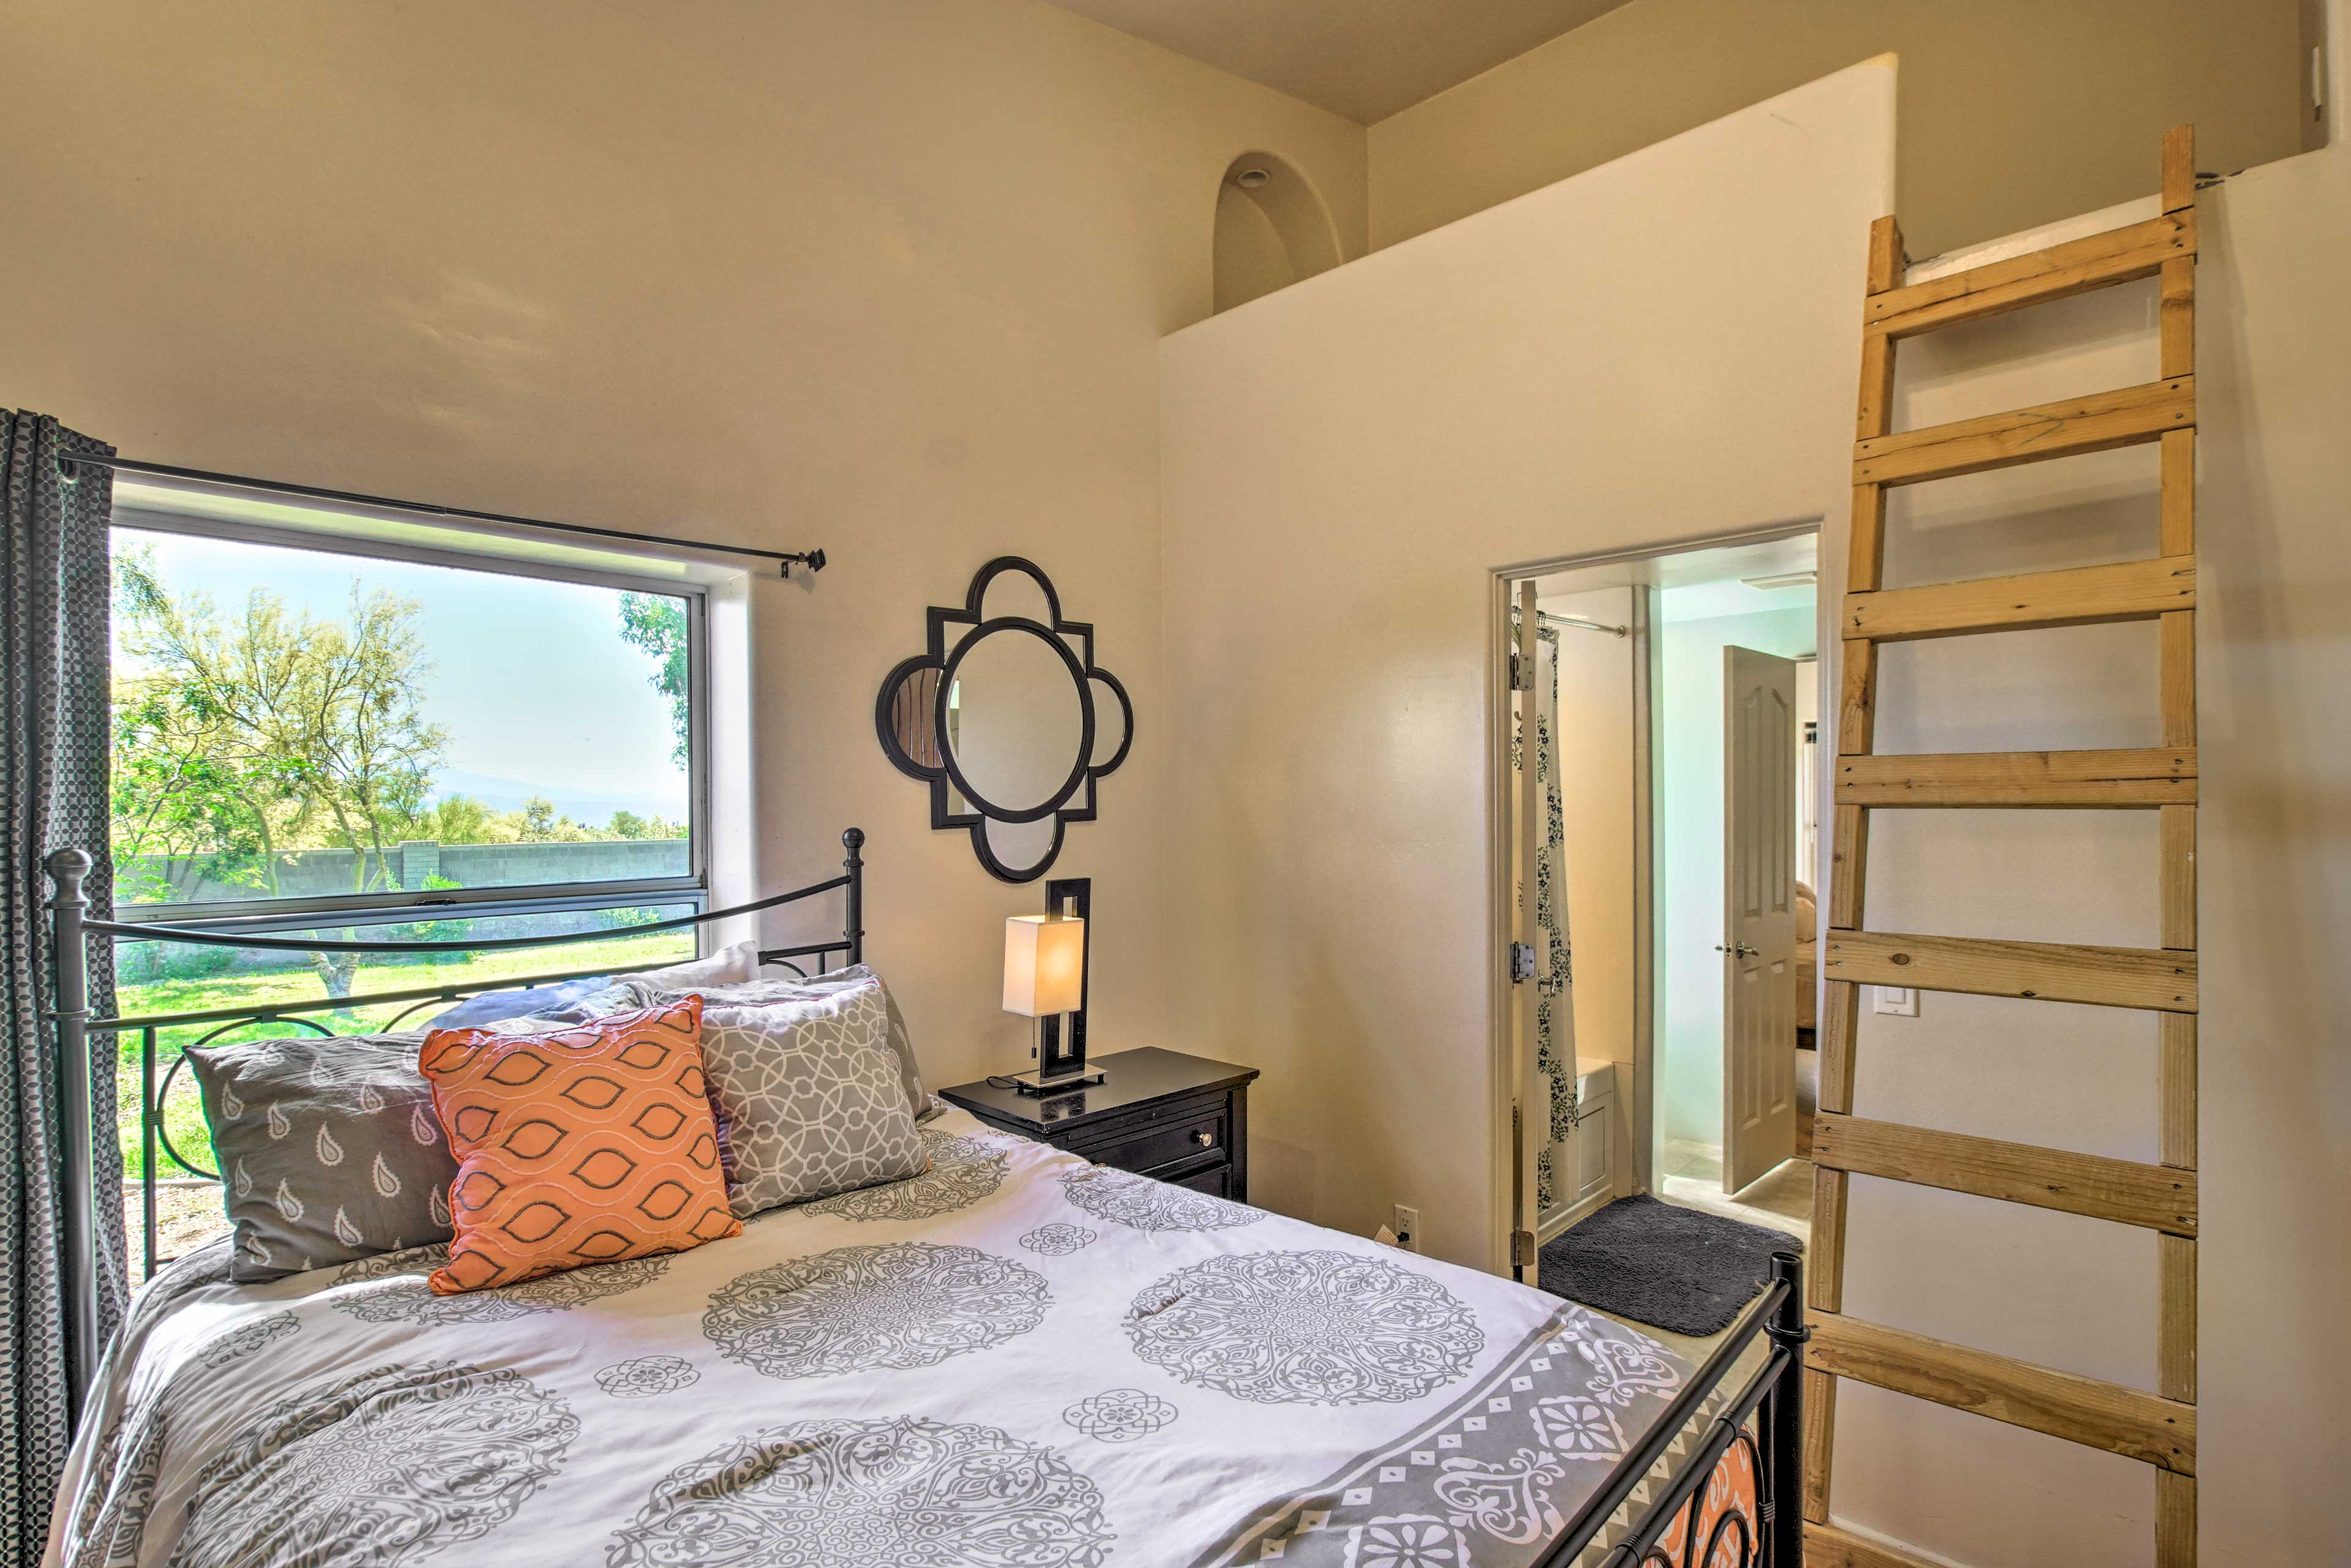 Kids will love the hidden crawl space in this bedroom.